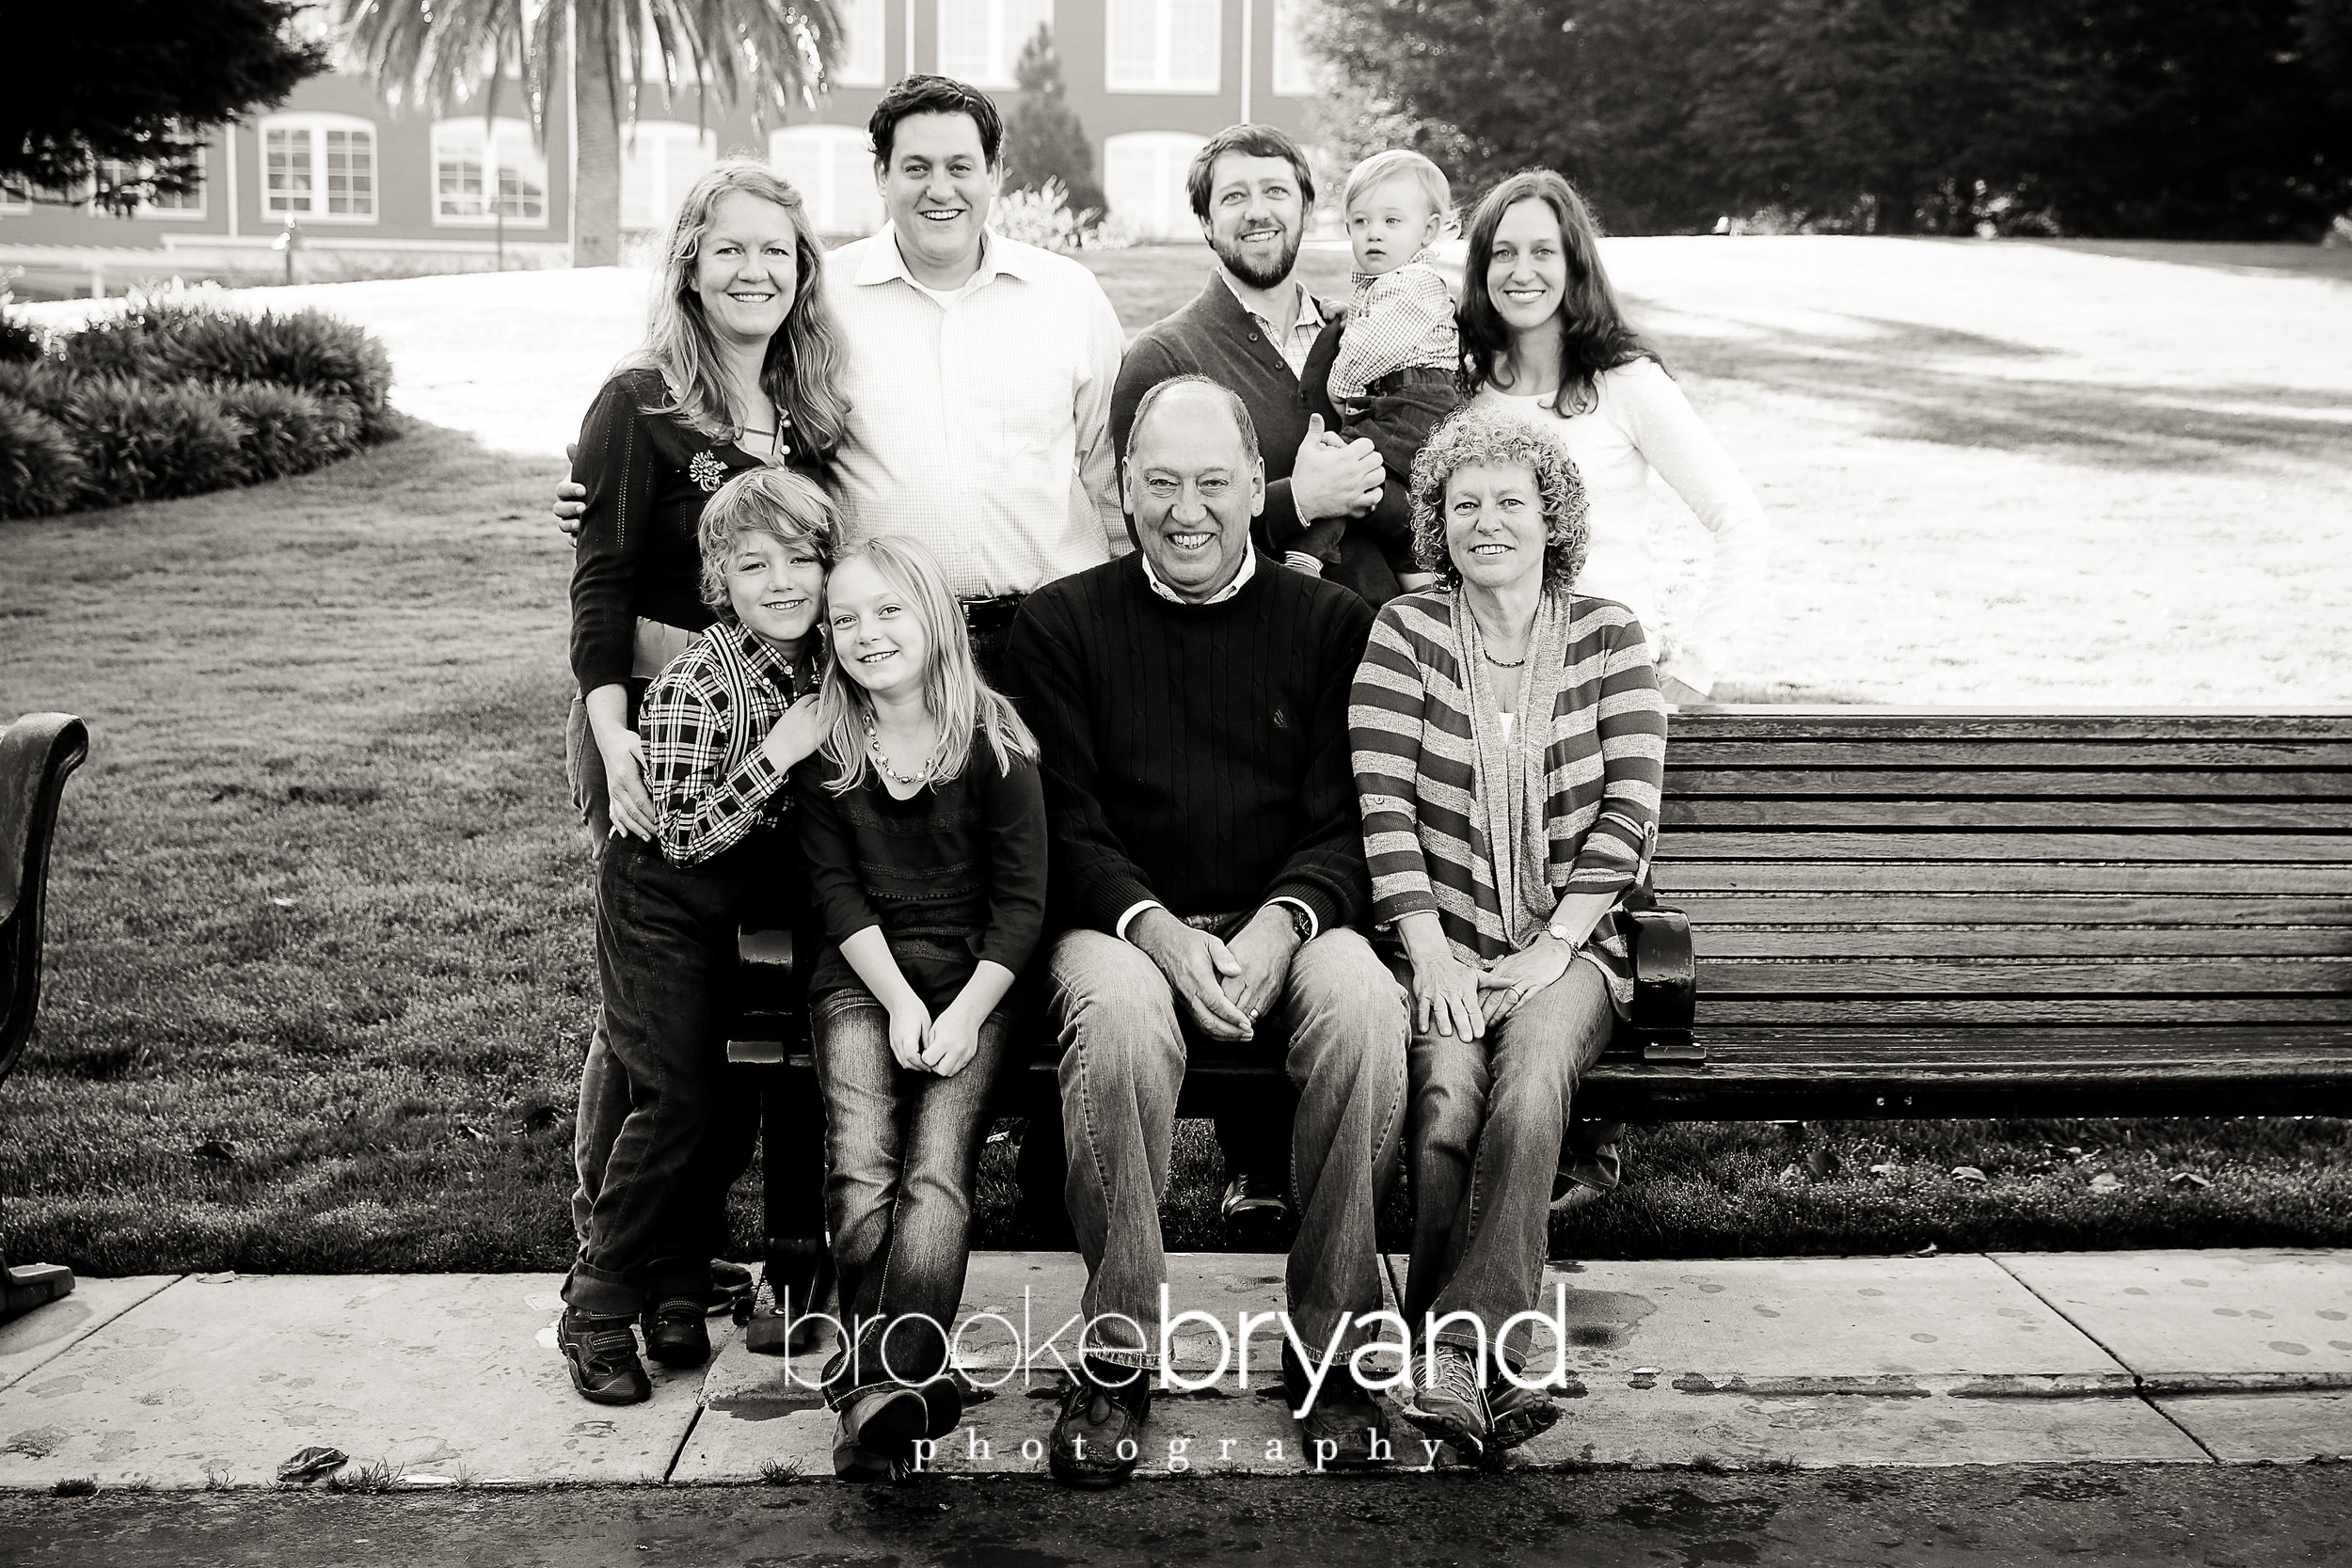 11.2013-deix-brooke-bryand-photography-san-francisco-family-photographer-presidio-family-photos-BBP_3944_retouch1.jpg